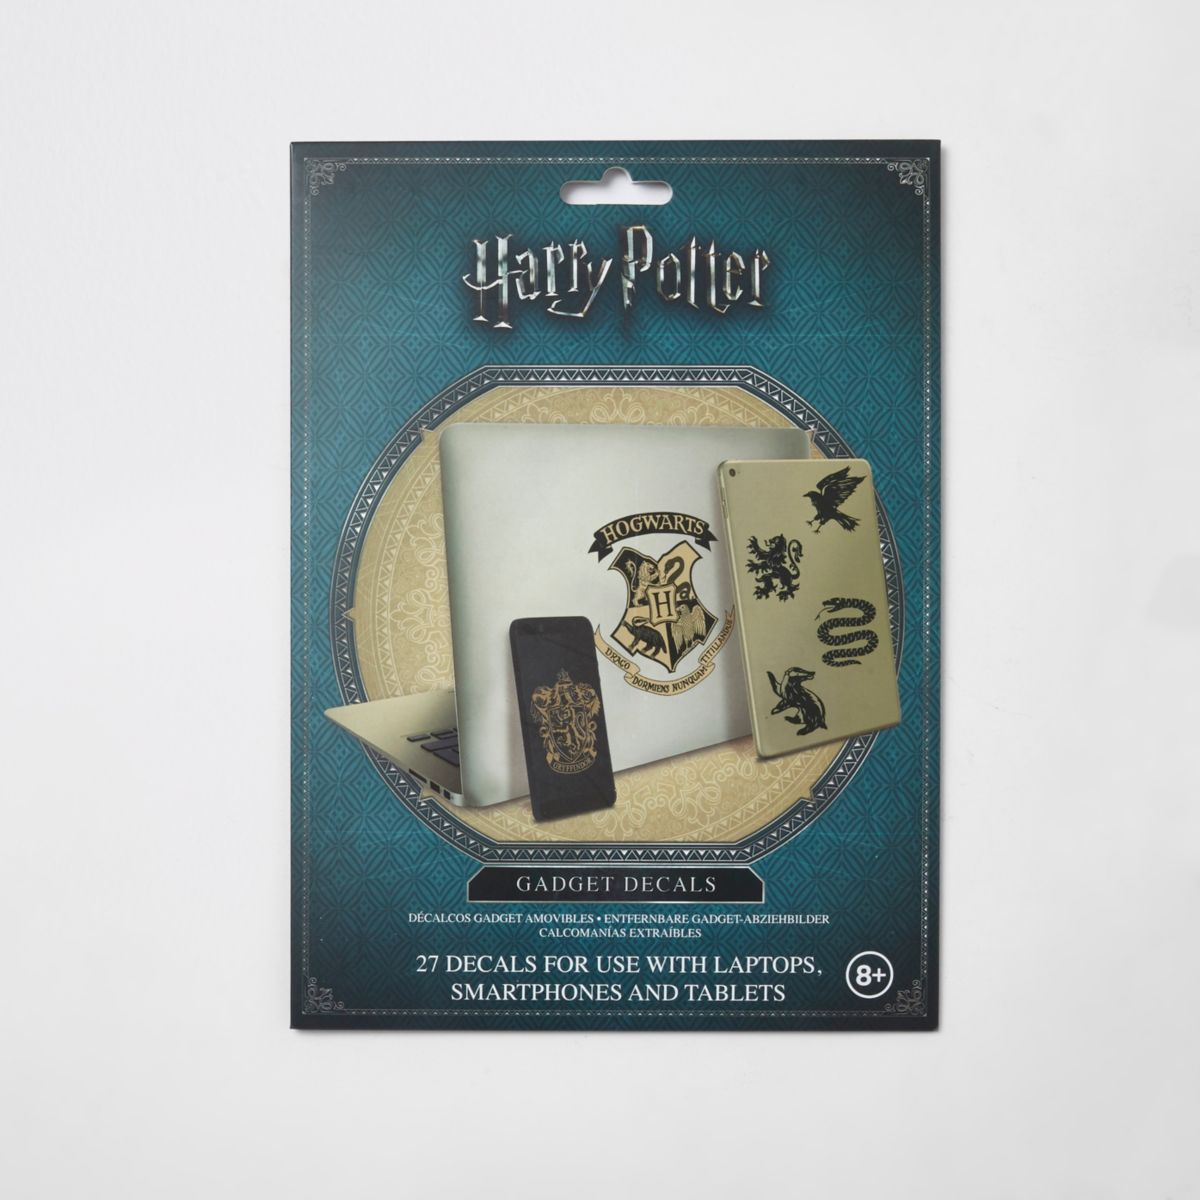 Harry Potter Hogwarts gadget decals set